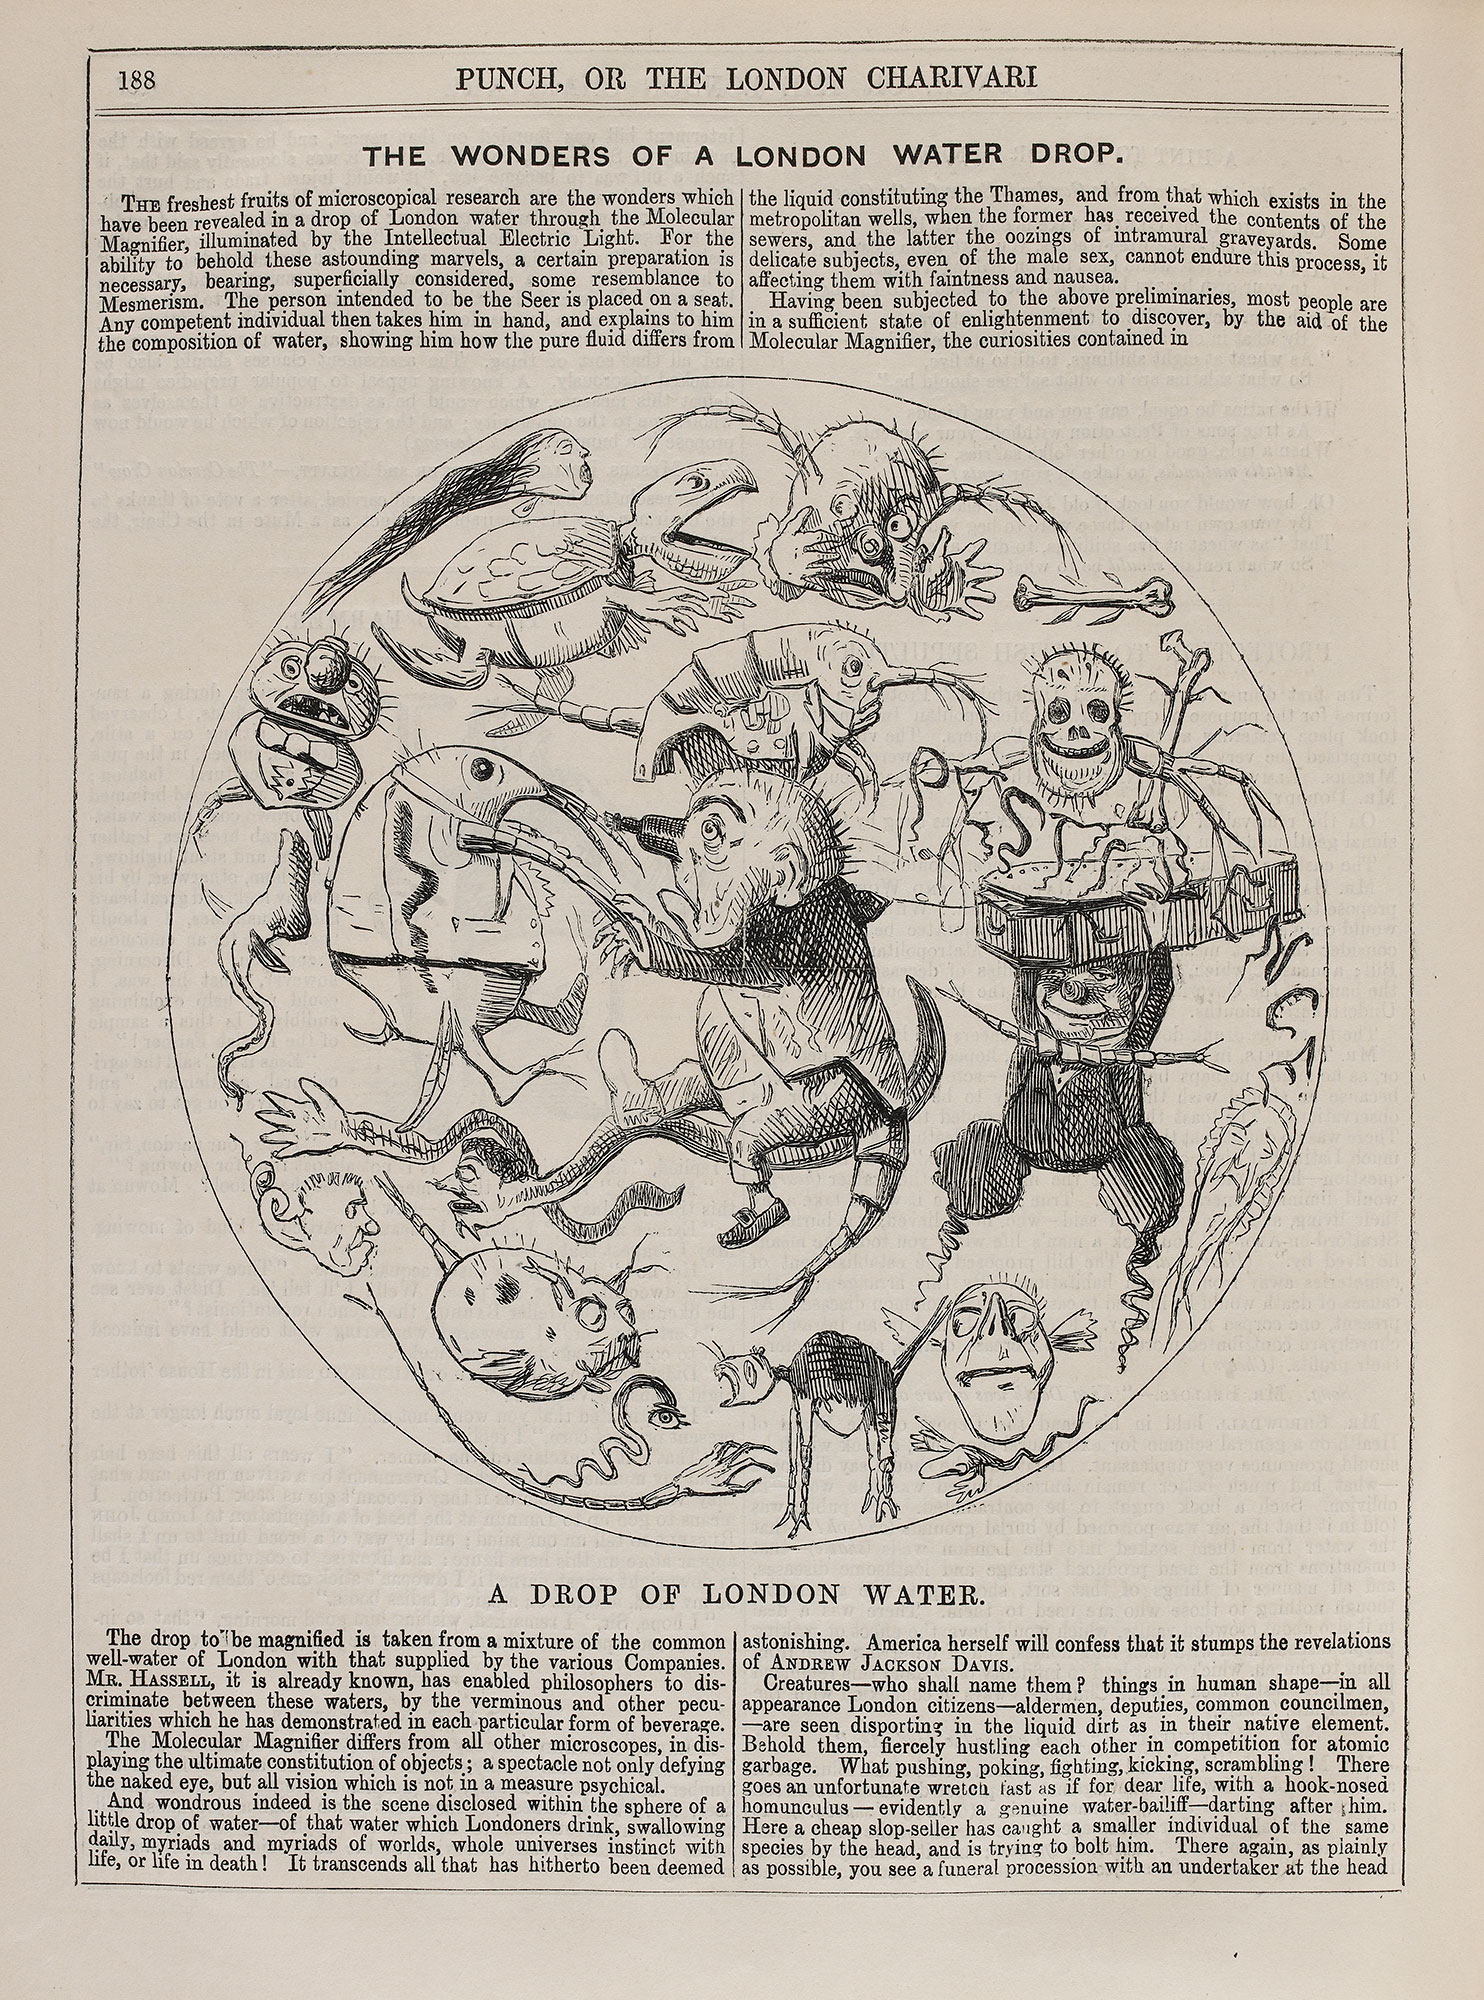 'The Wonders of a London Water Drop' from Punch